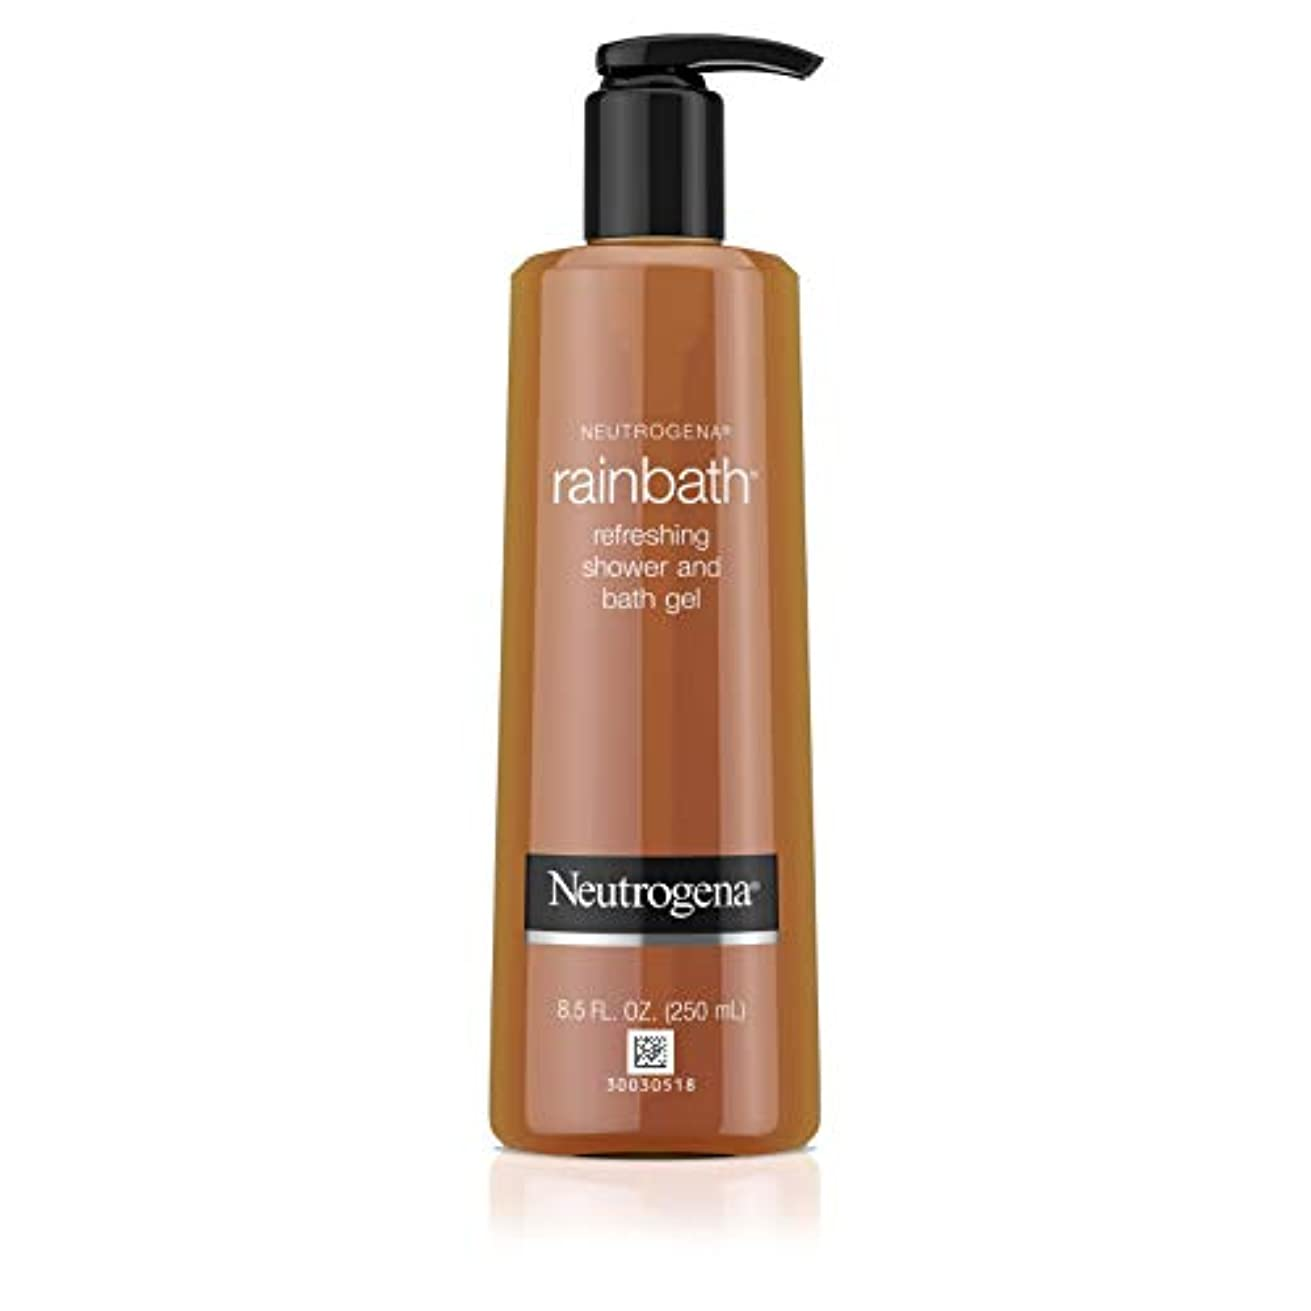 Neutrogena Original Rainbath Gel - 8.5 fl oz (並行輸入品)